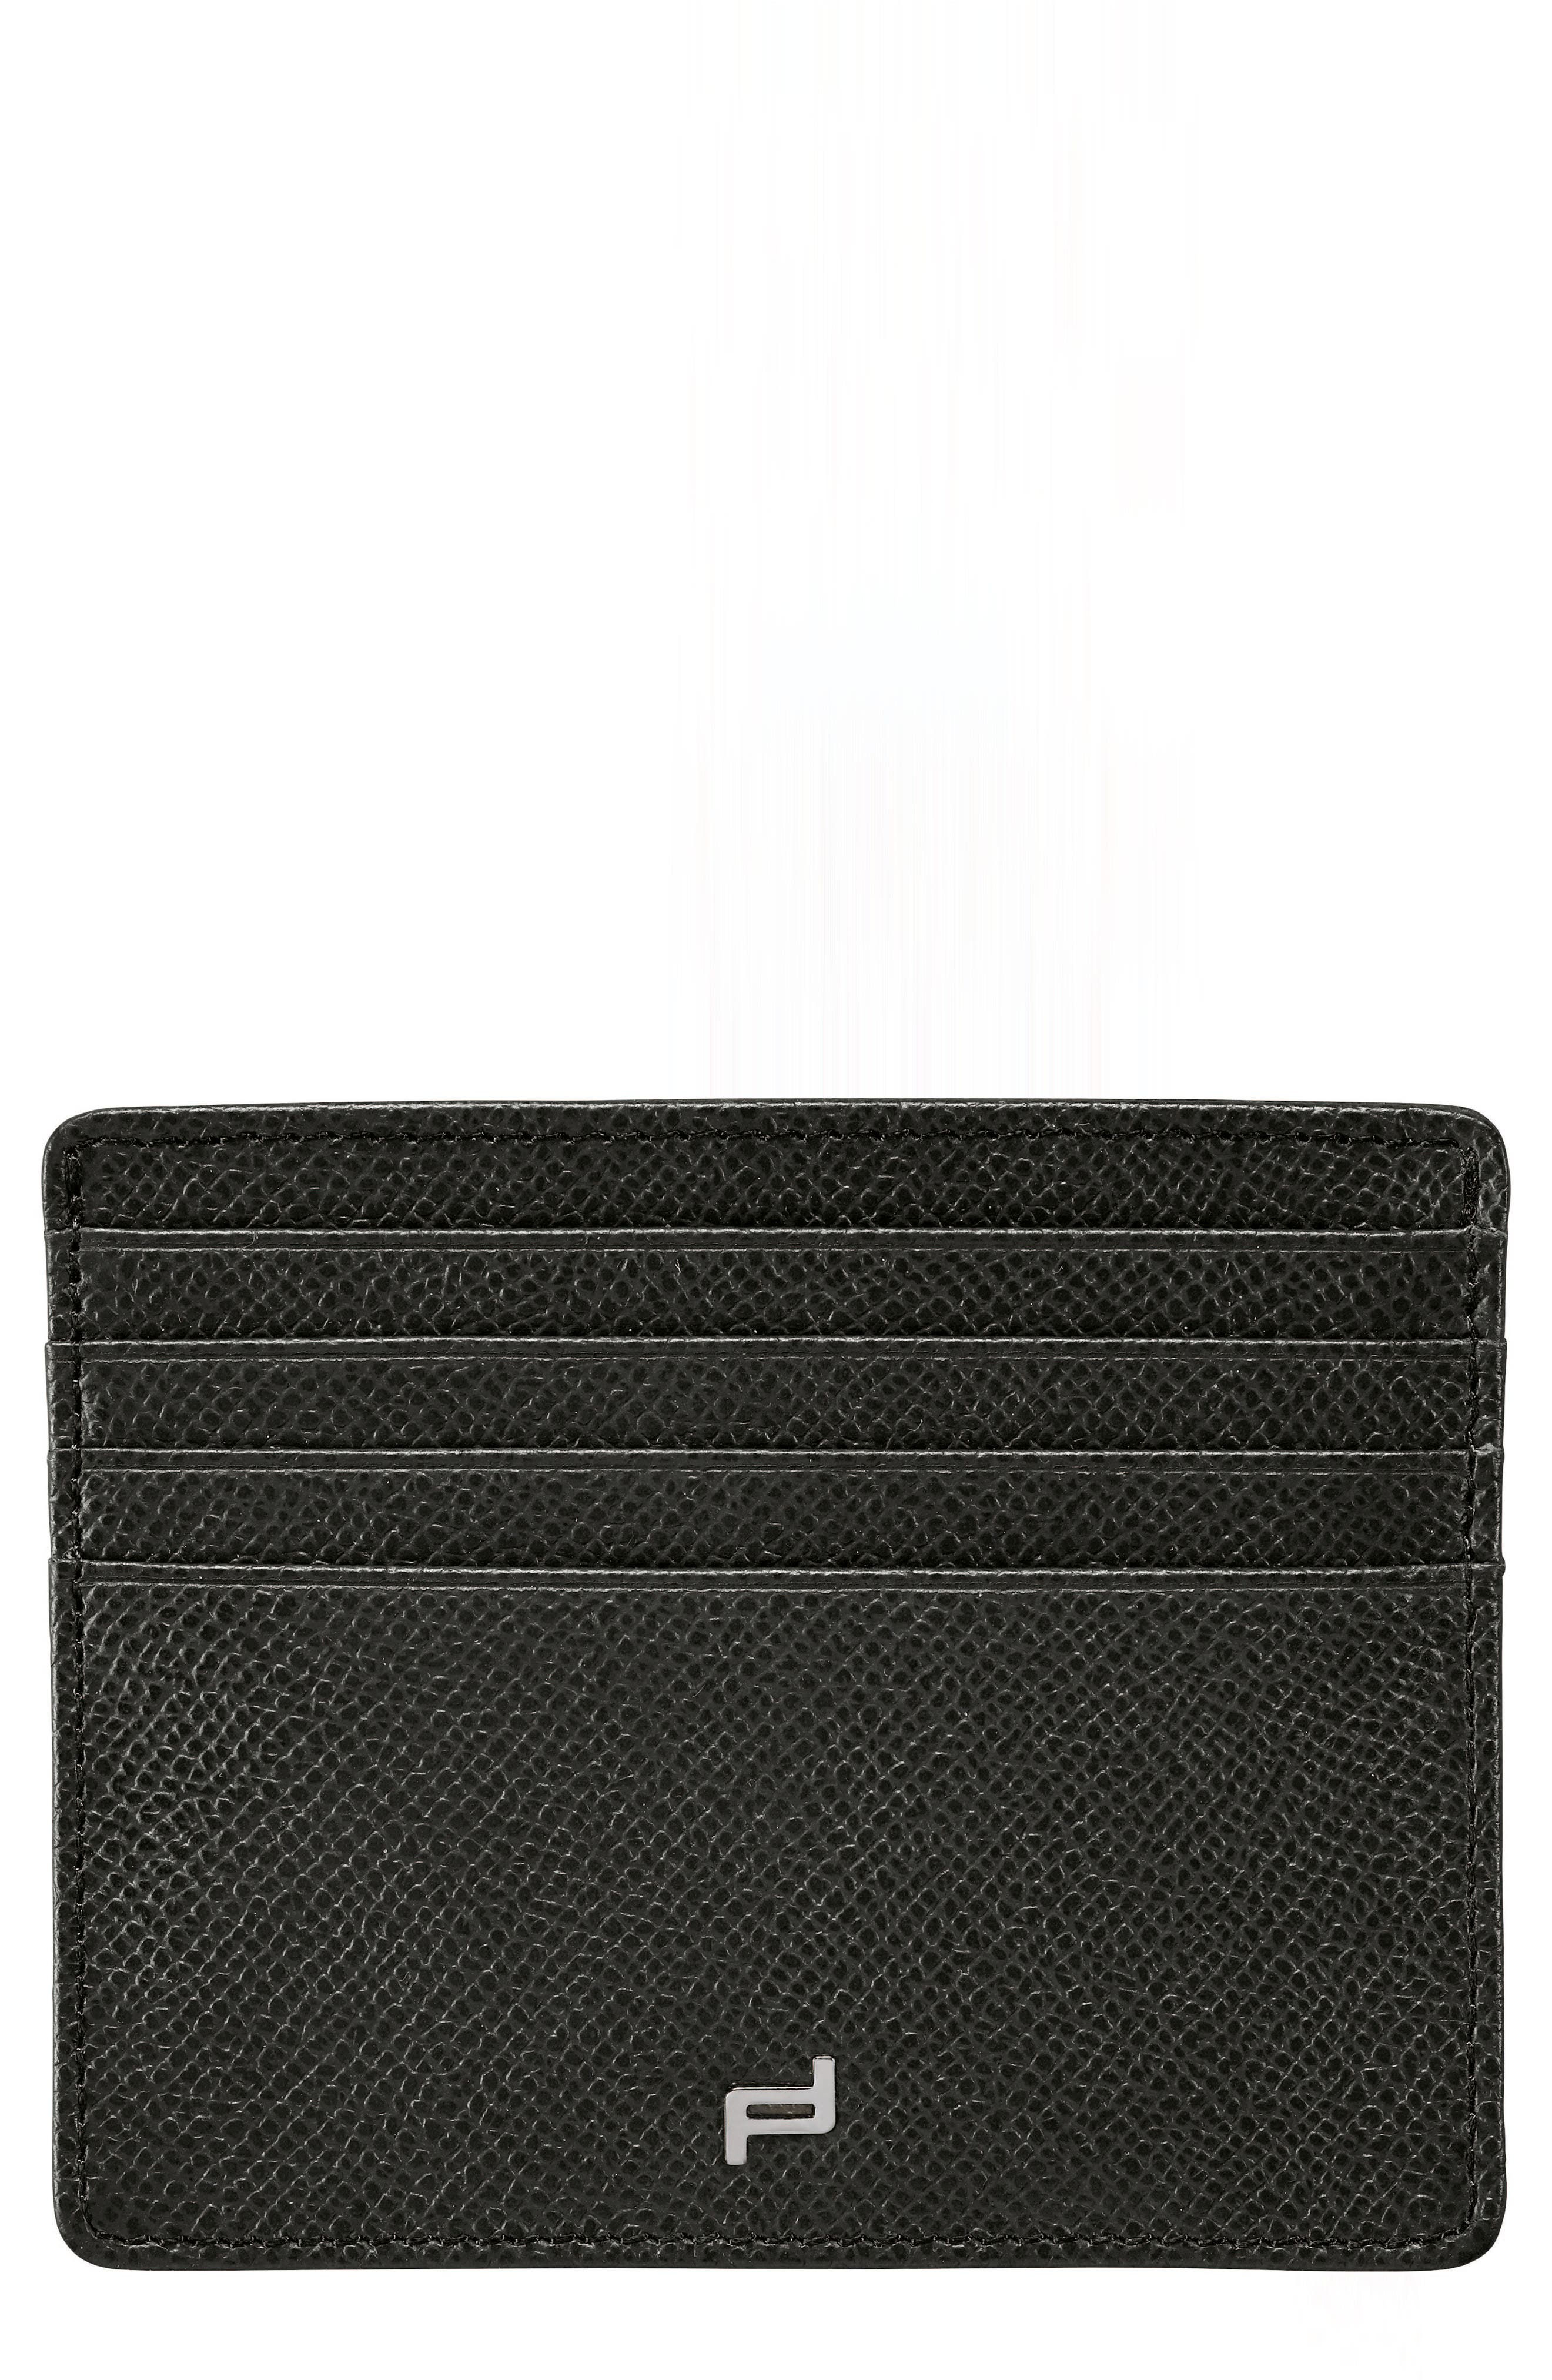 French Classic 3.0 Leather Card Case,                         Main,                         color, Black